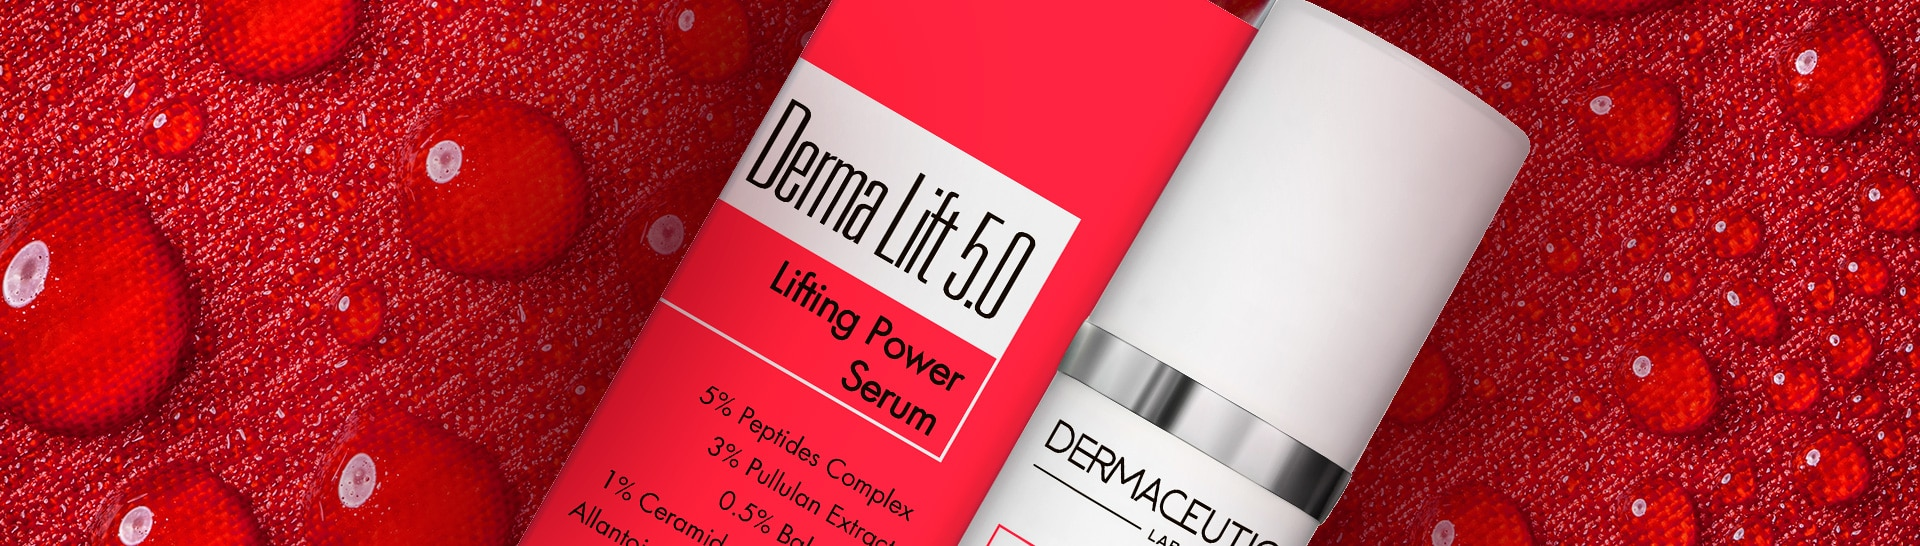 Acción de Derma Lift 5.0